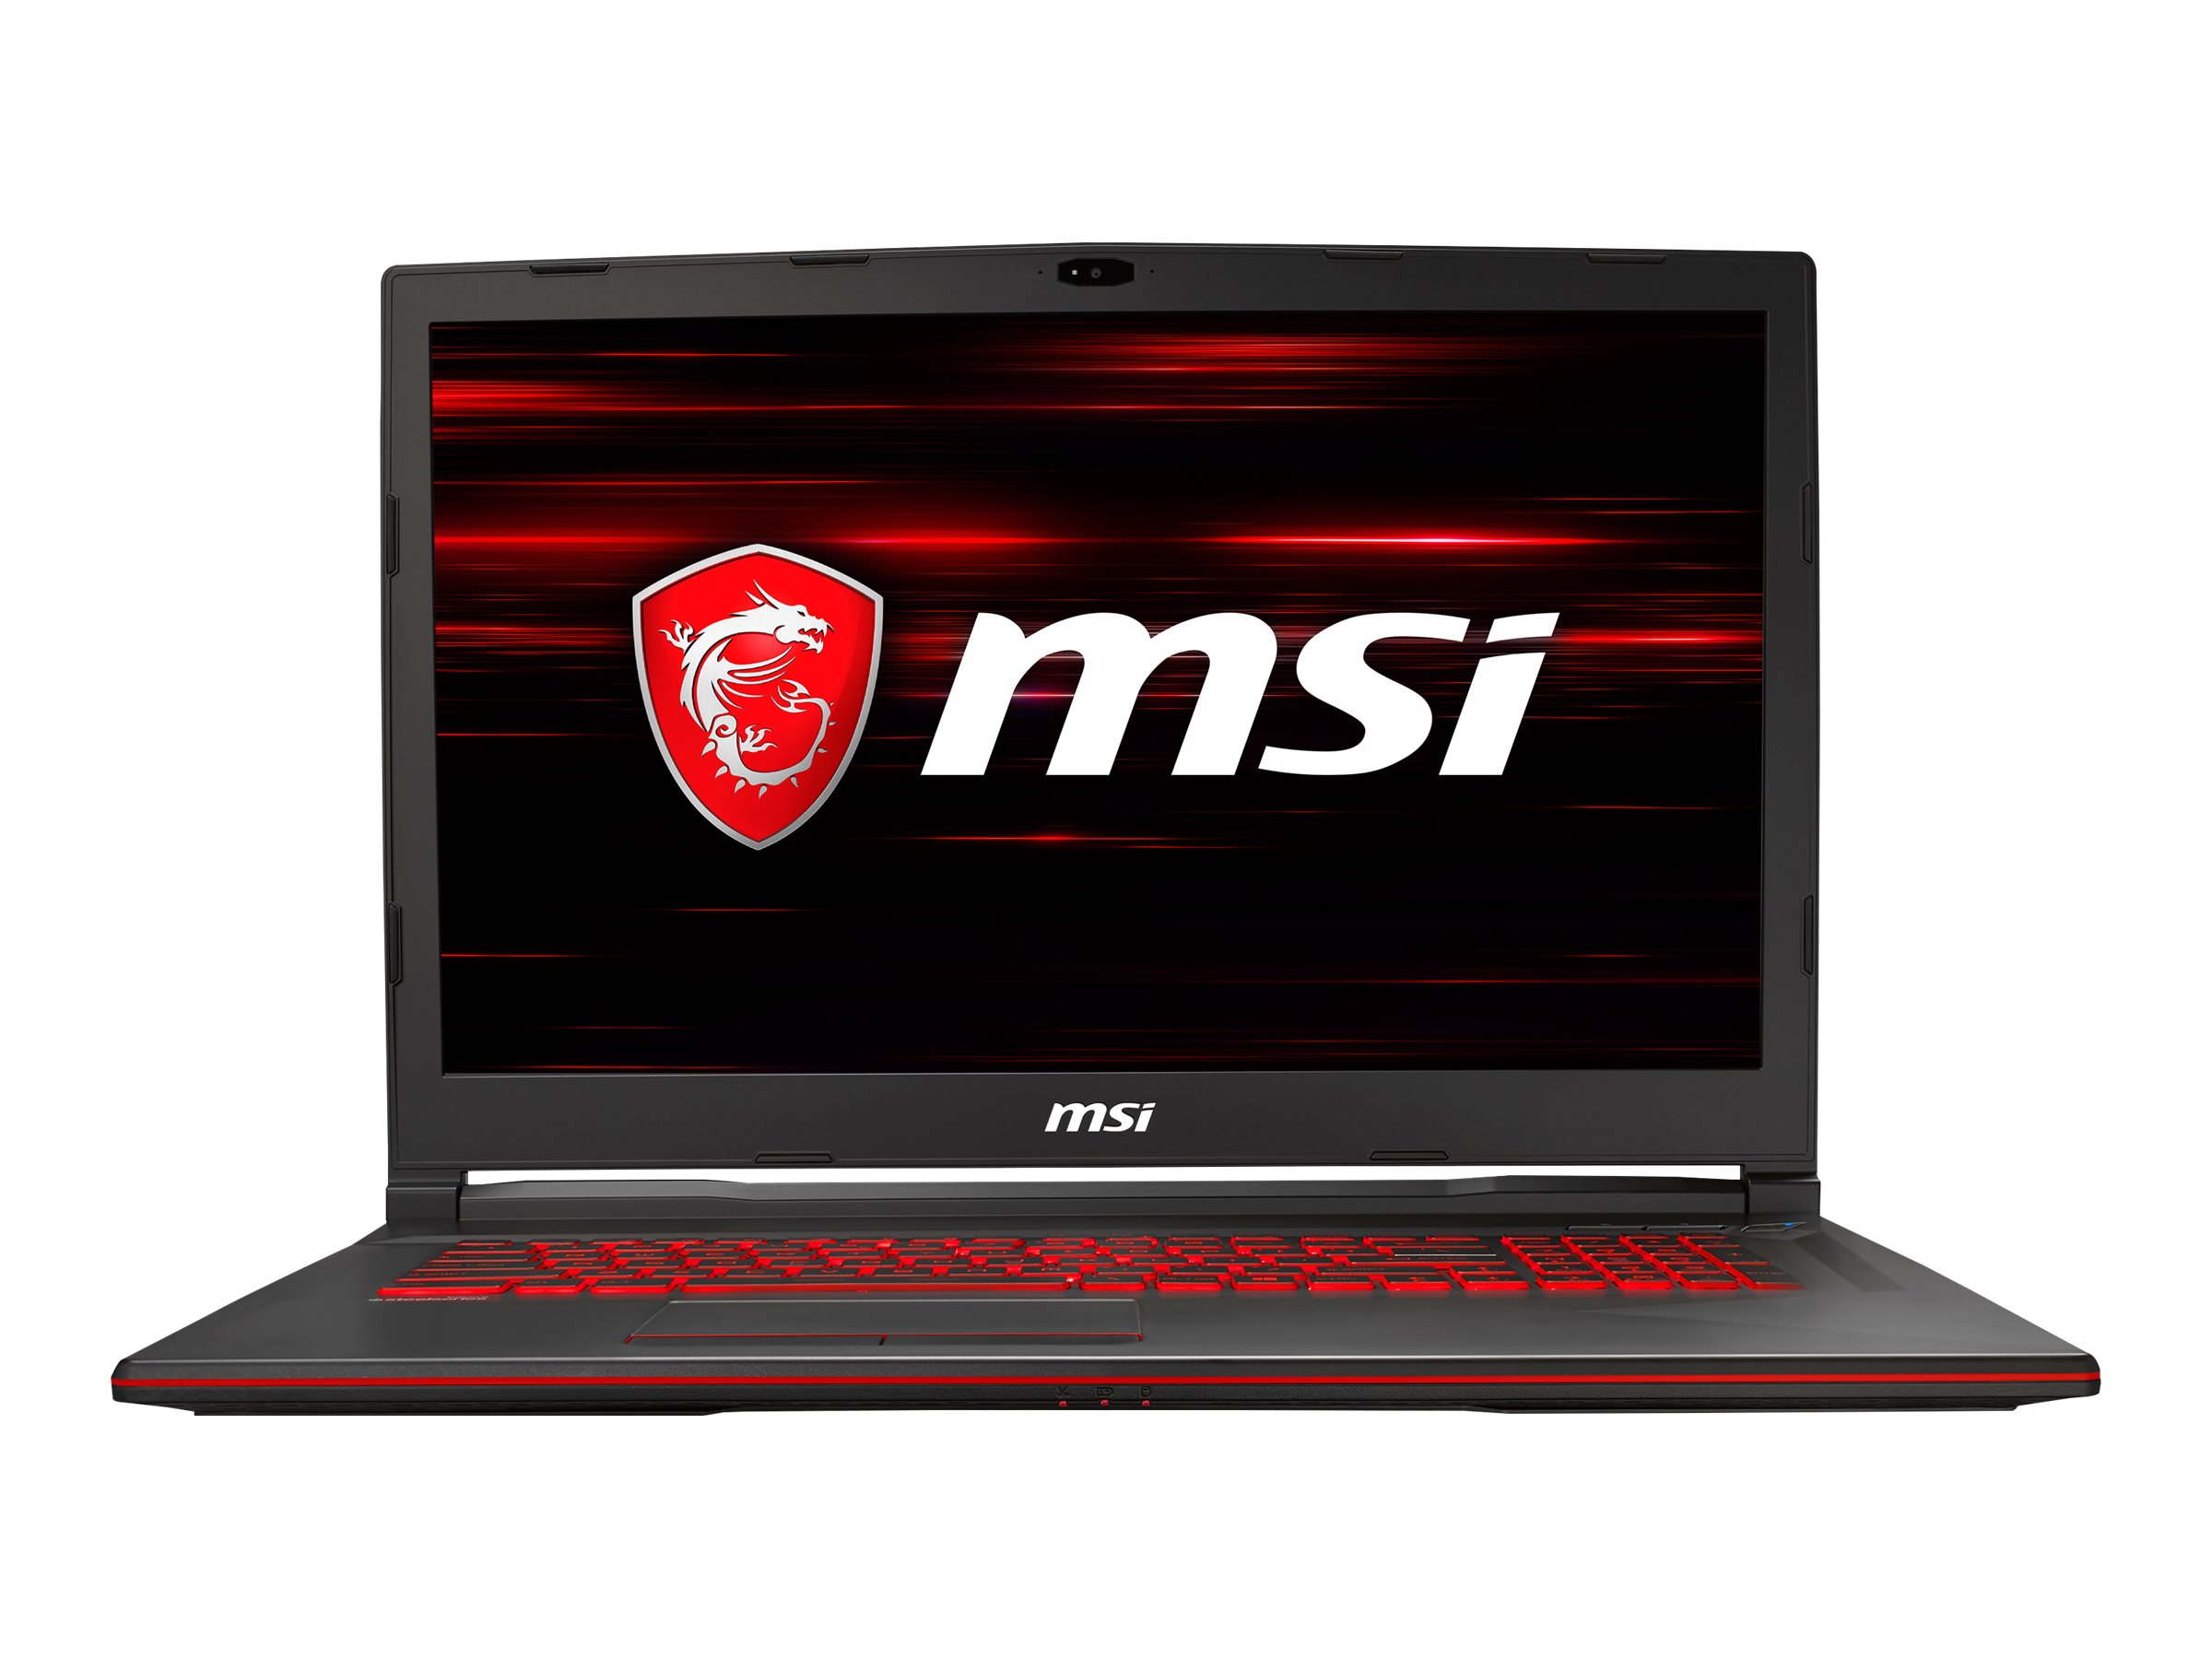 """Image for MSI GL73 8RC 032 - 17.3"""" - Core i7 8750H - 16 GB RAM - 128 GB SSD + 1 TB HDD from Circuit City"""